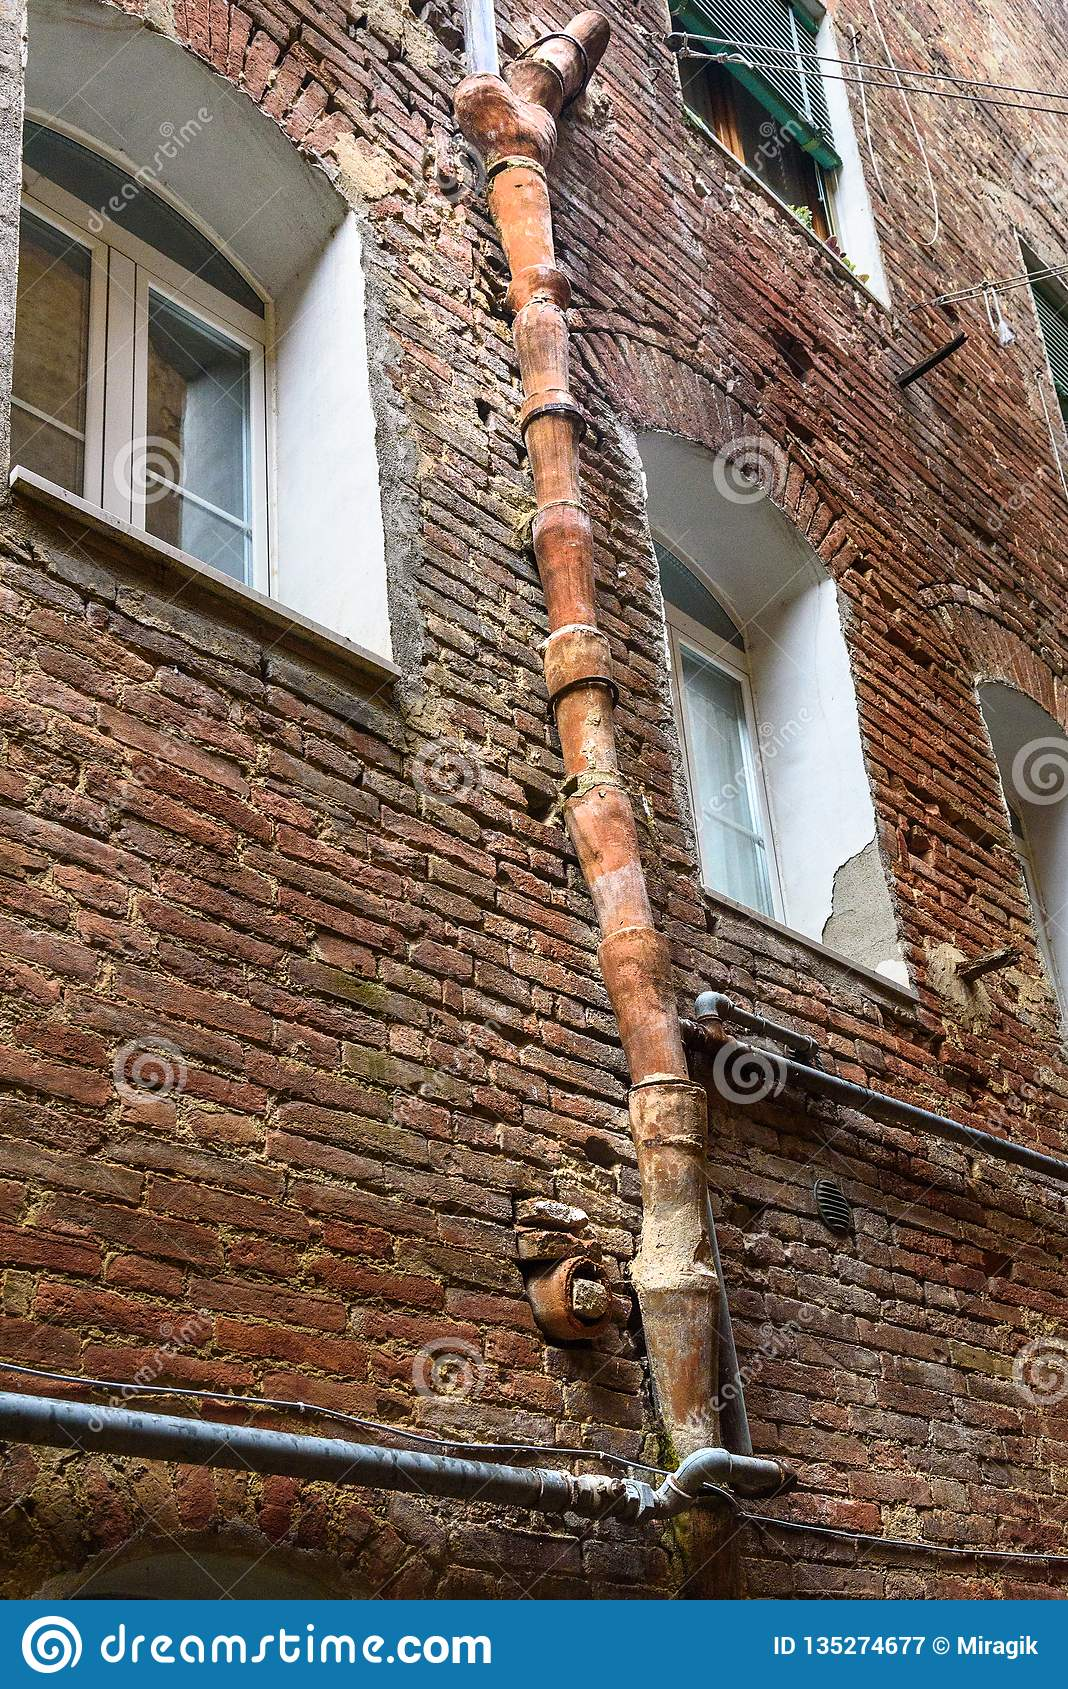 Medieval clay downspout on street Vicolo degli Orefici in Siena, Tuscany, Italy